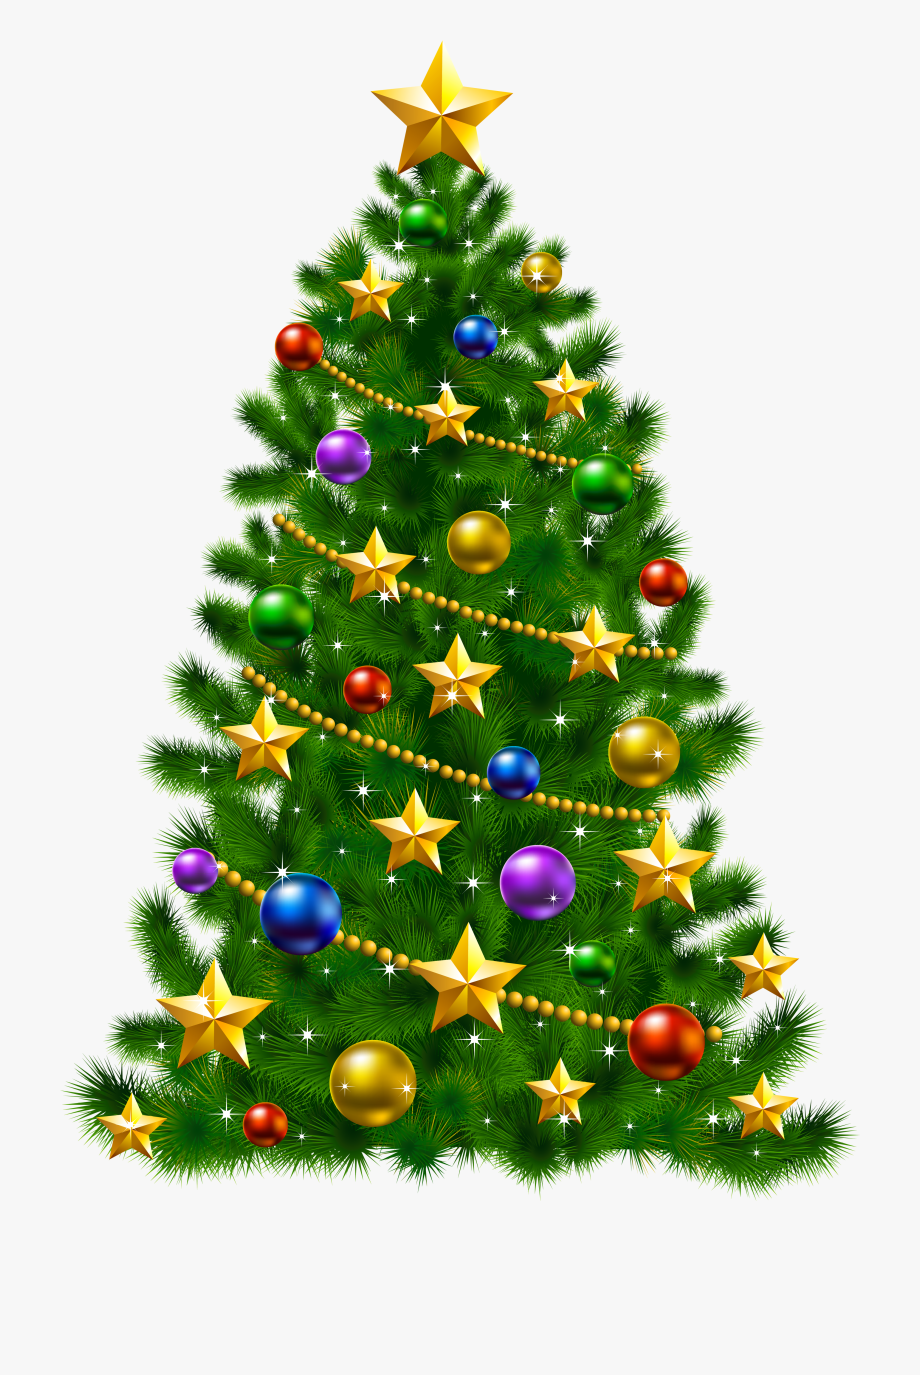 Transparent Christmas Tree Clipart.